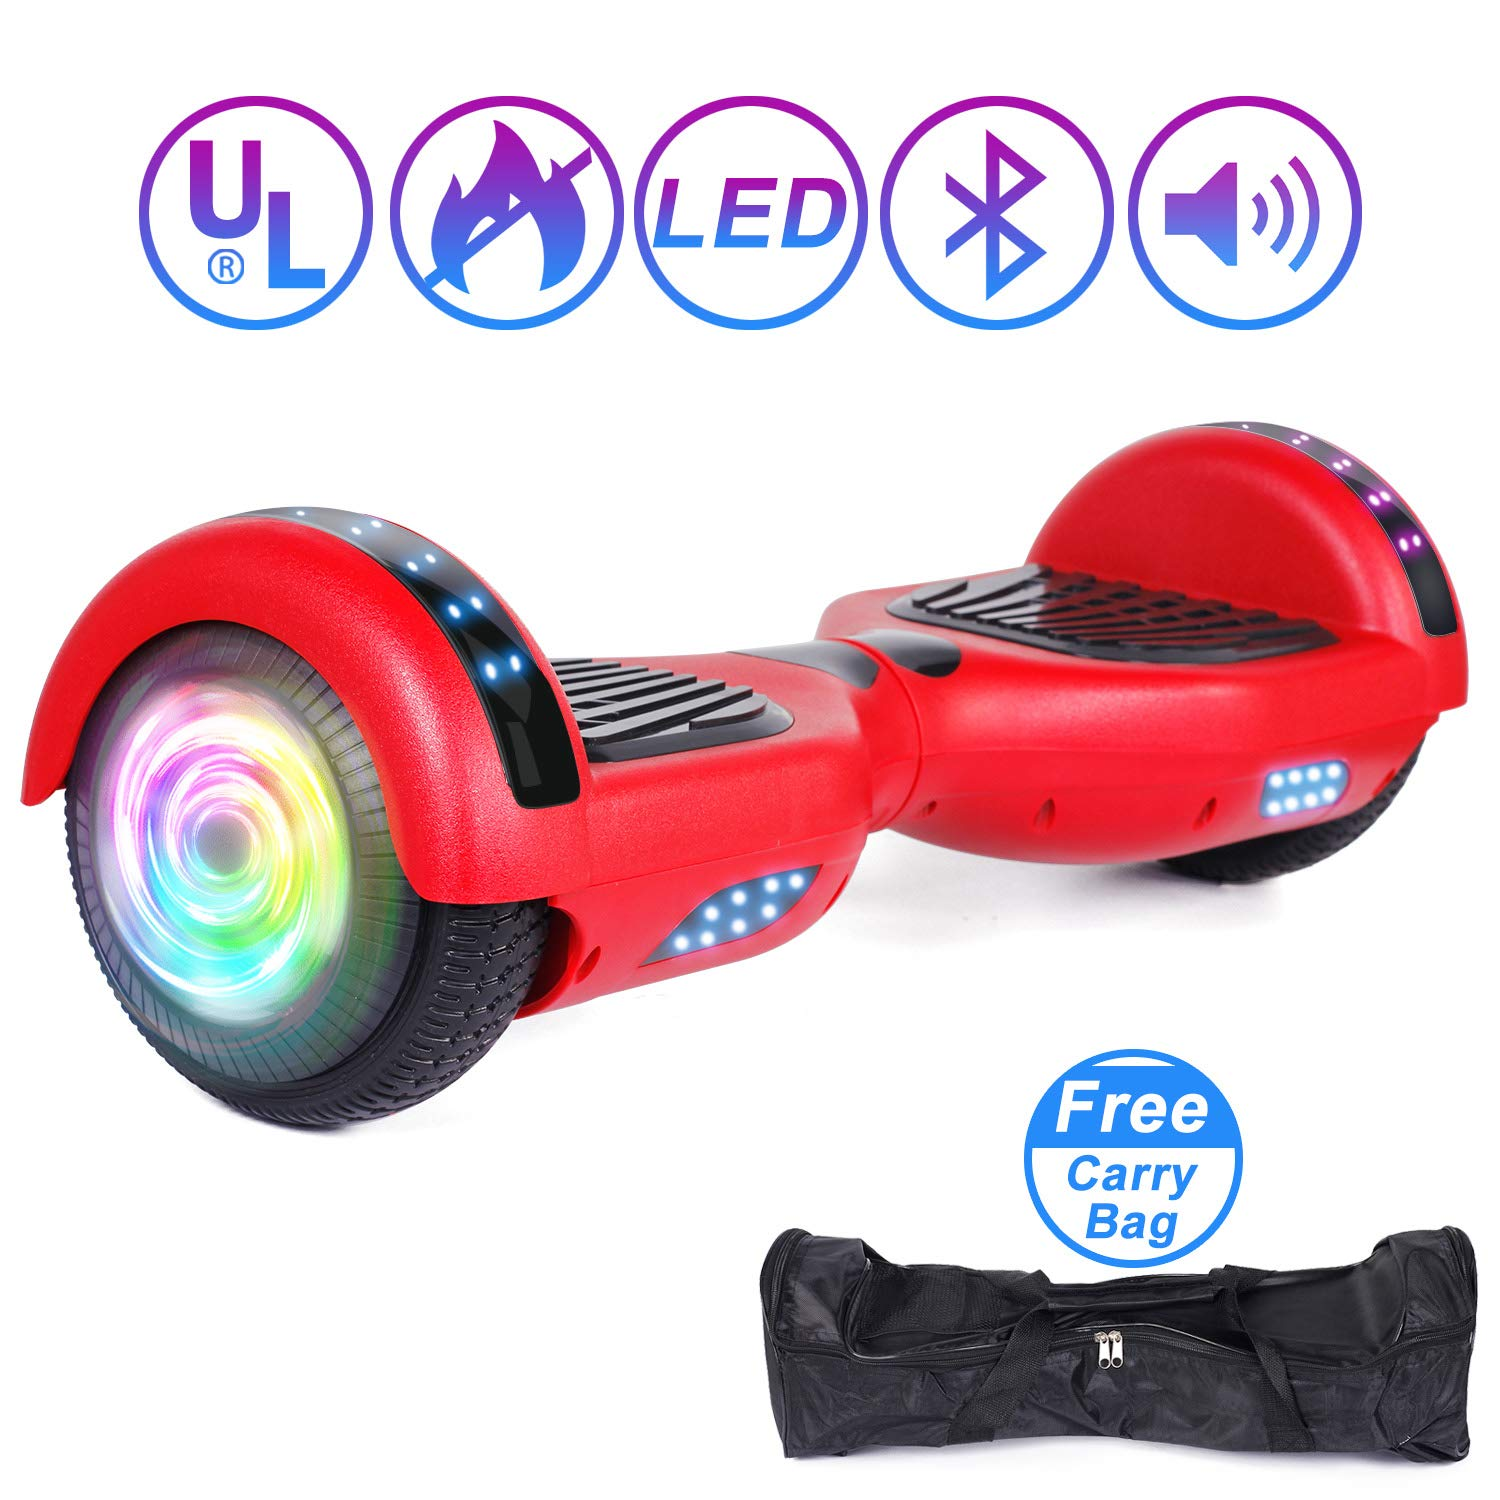 "SISIGAD Hoverboard 6.5"" Self Balancing Scooter with Colorful LED Wheels Lights Two-Wheels self Balancing Hoverboard Dual 300W Motors Hover Board UL2272 Certified(Free Carry Bag Available) by SISIGAD (Image #1)"